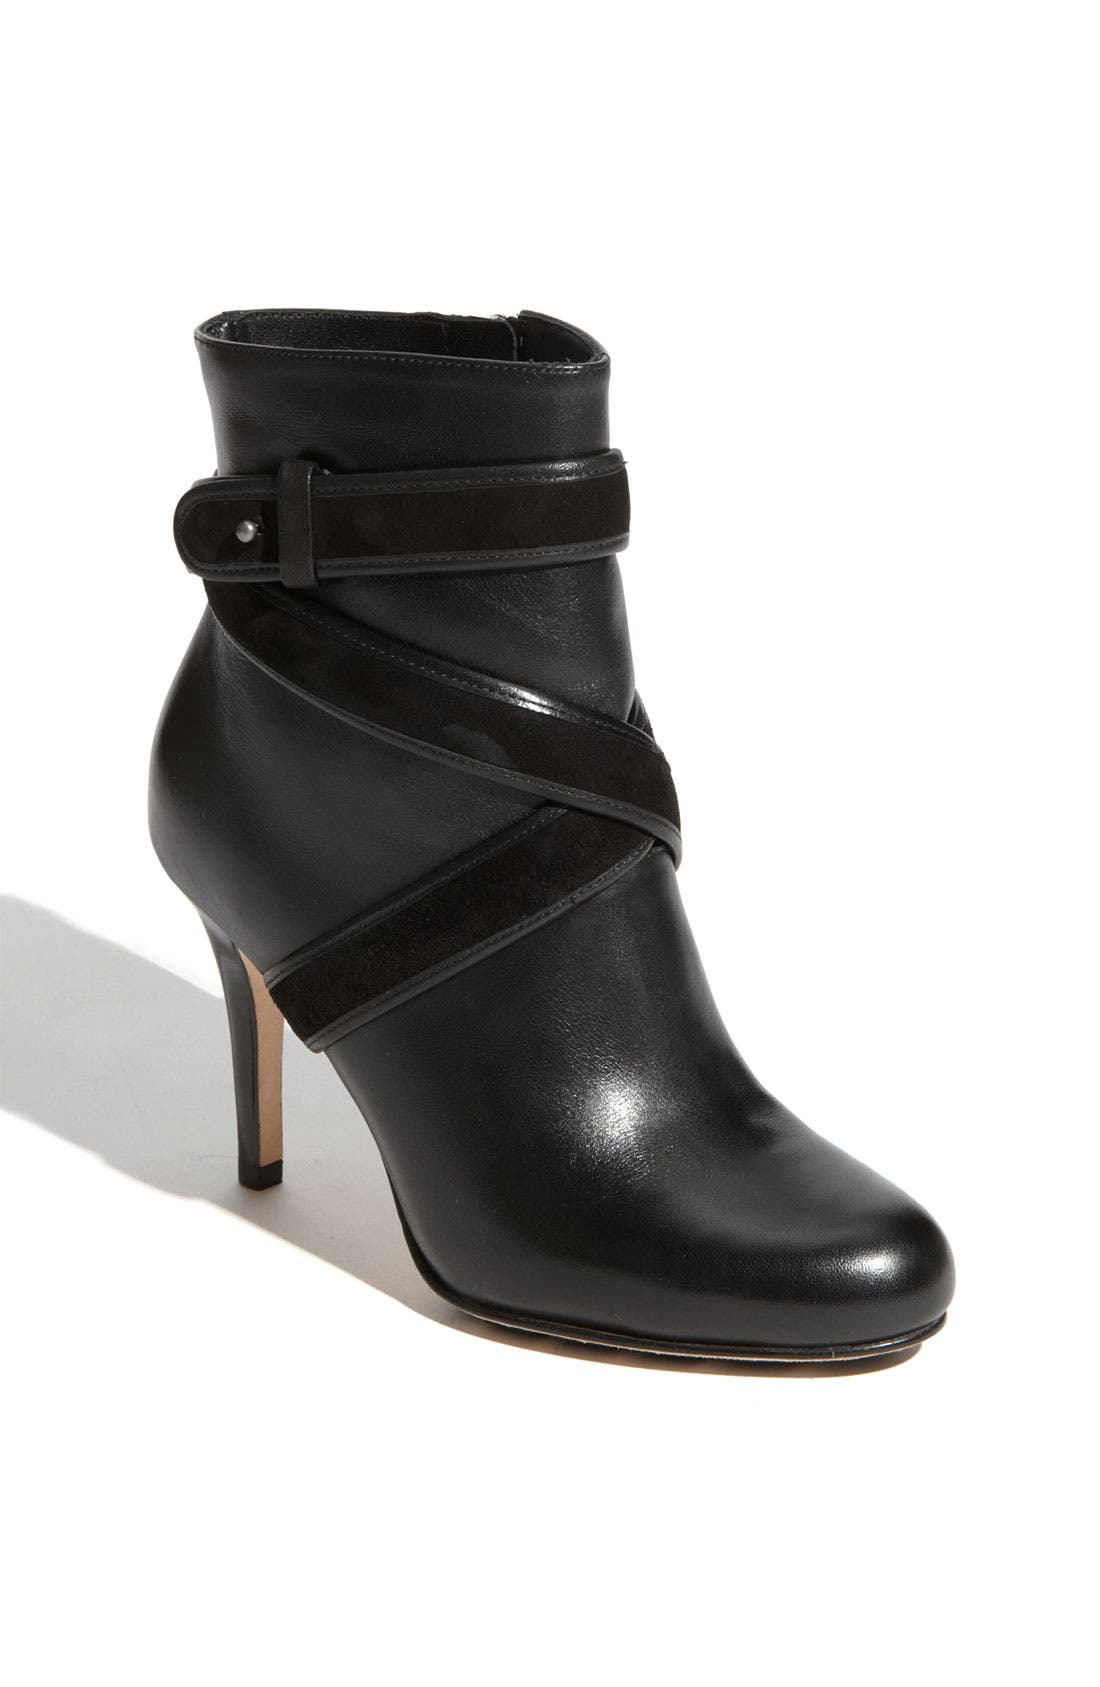 Alternate Image 1 Selected - Cole Haan 'Air Talia' Short Boot